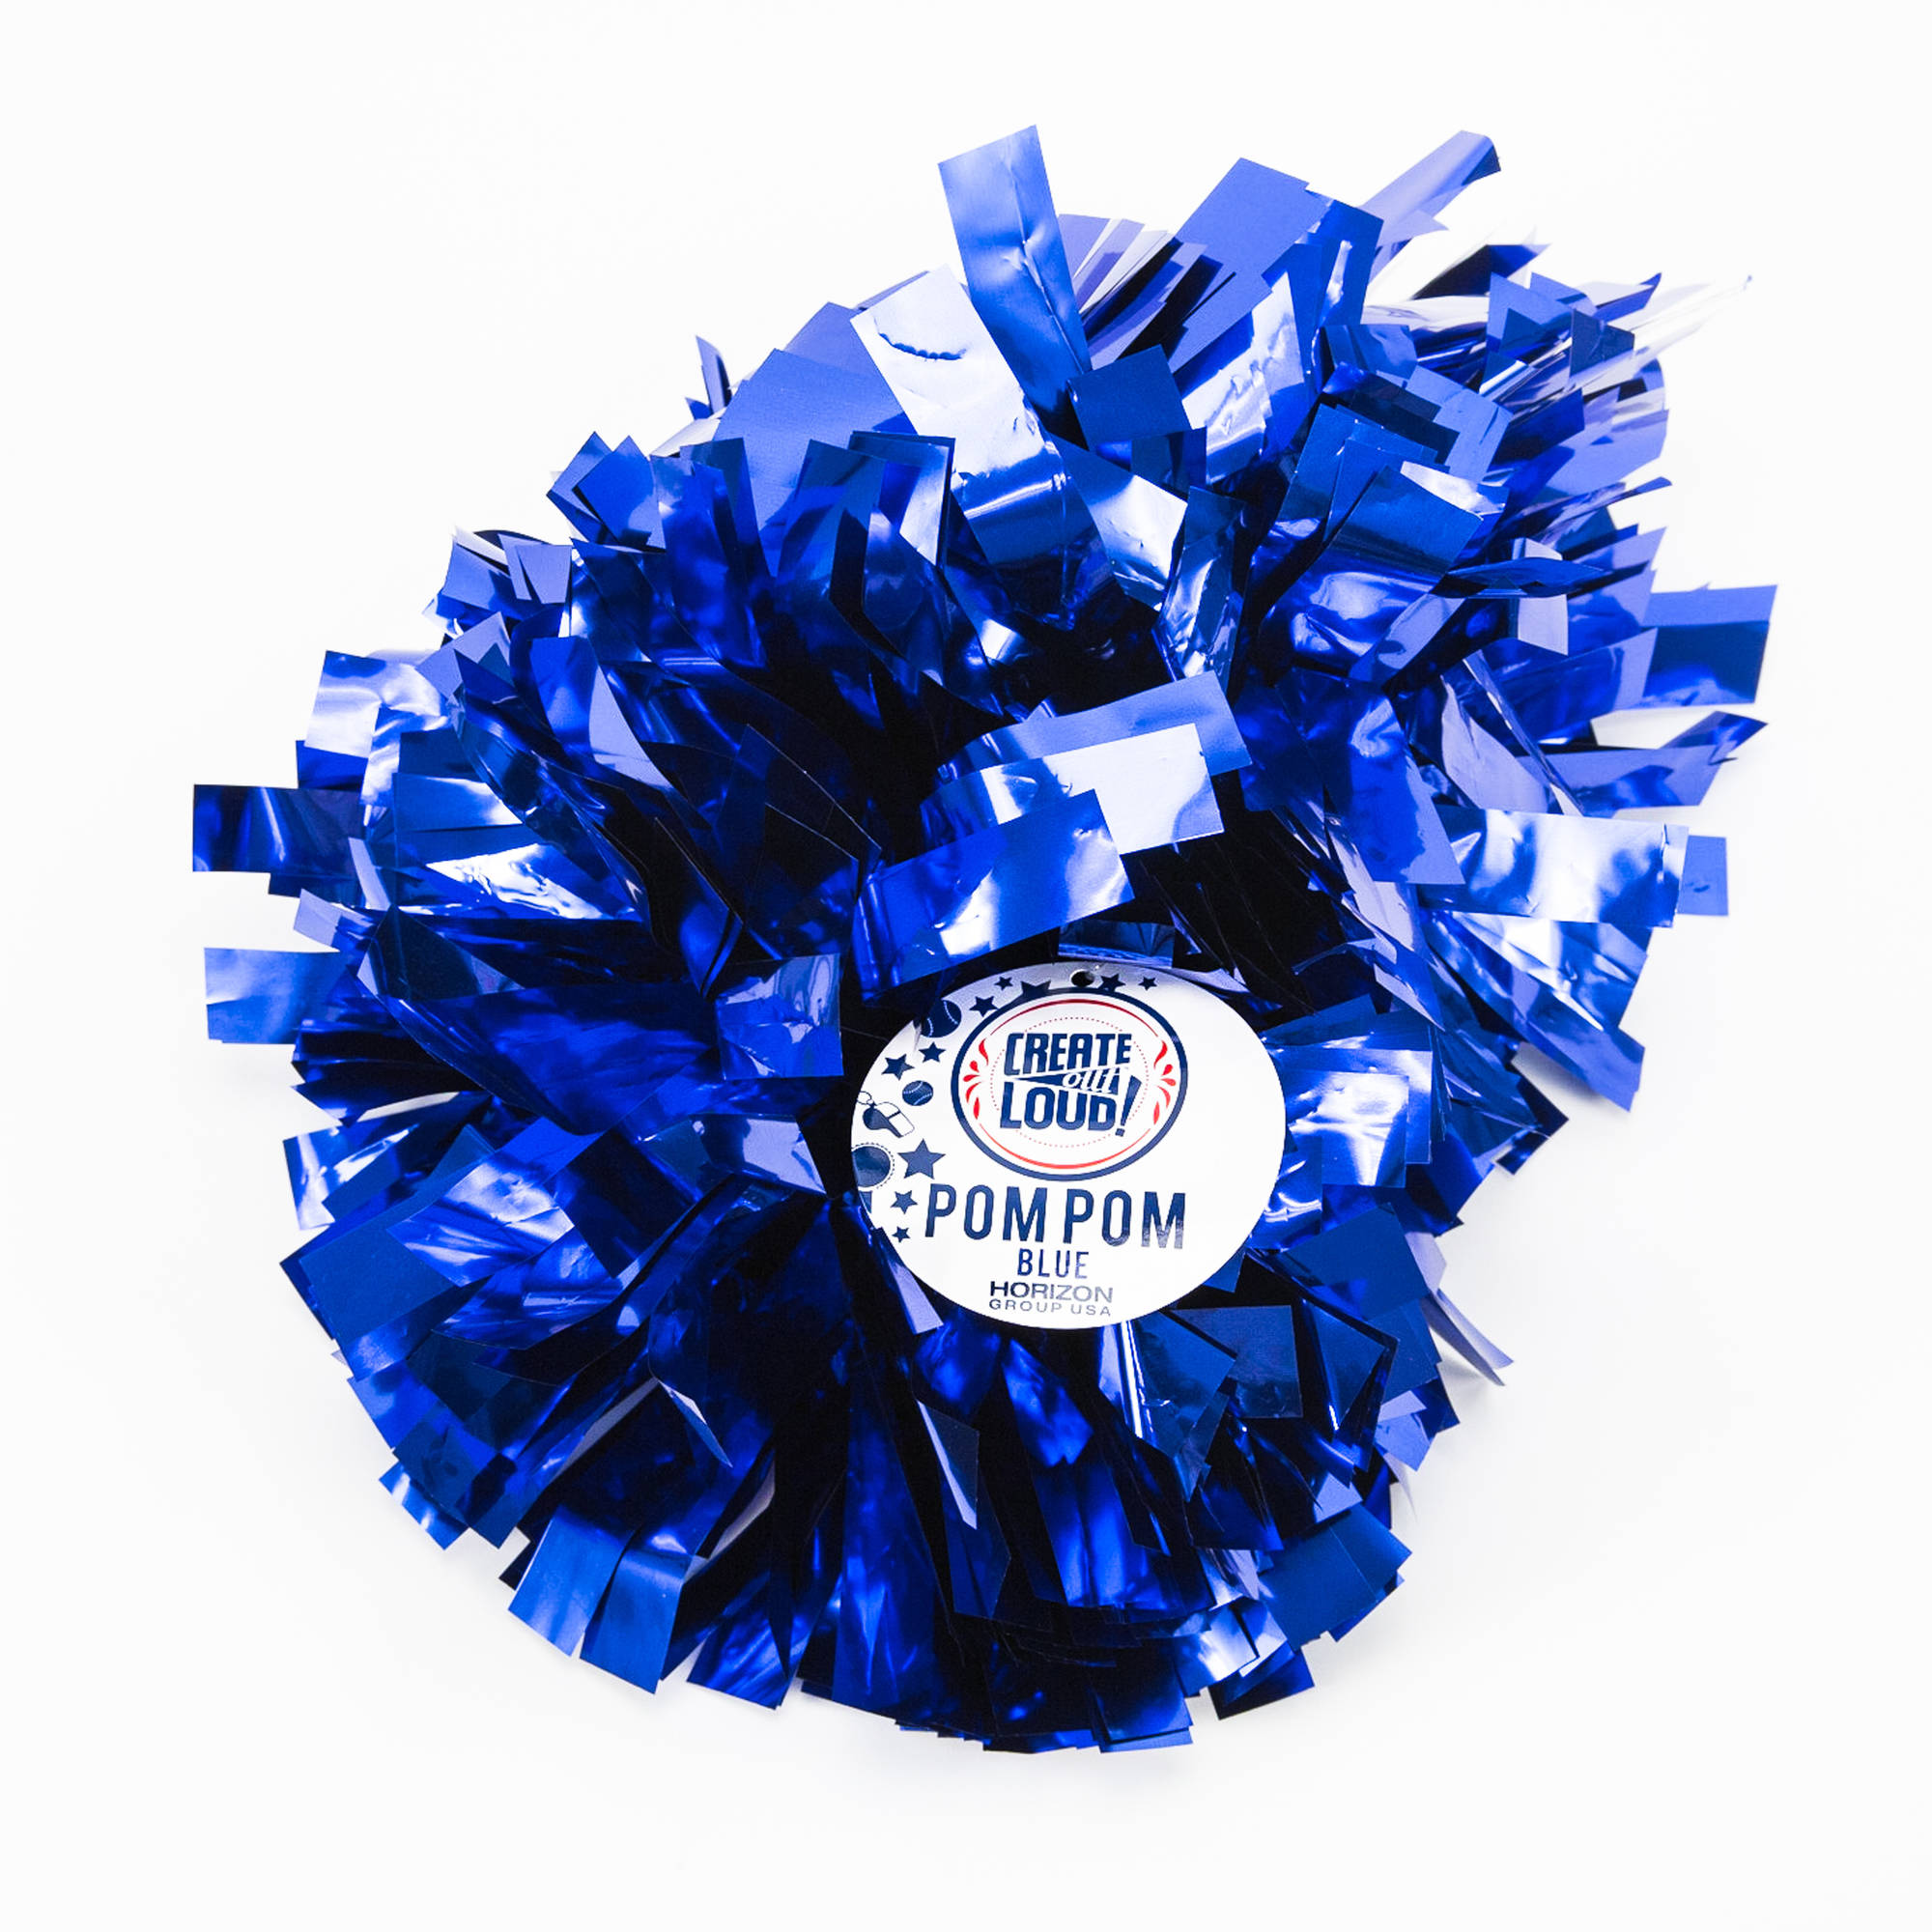 Create Out Loud Blue Pom Pom by Horizon Group USA